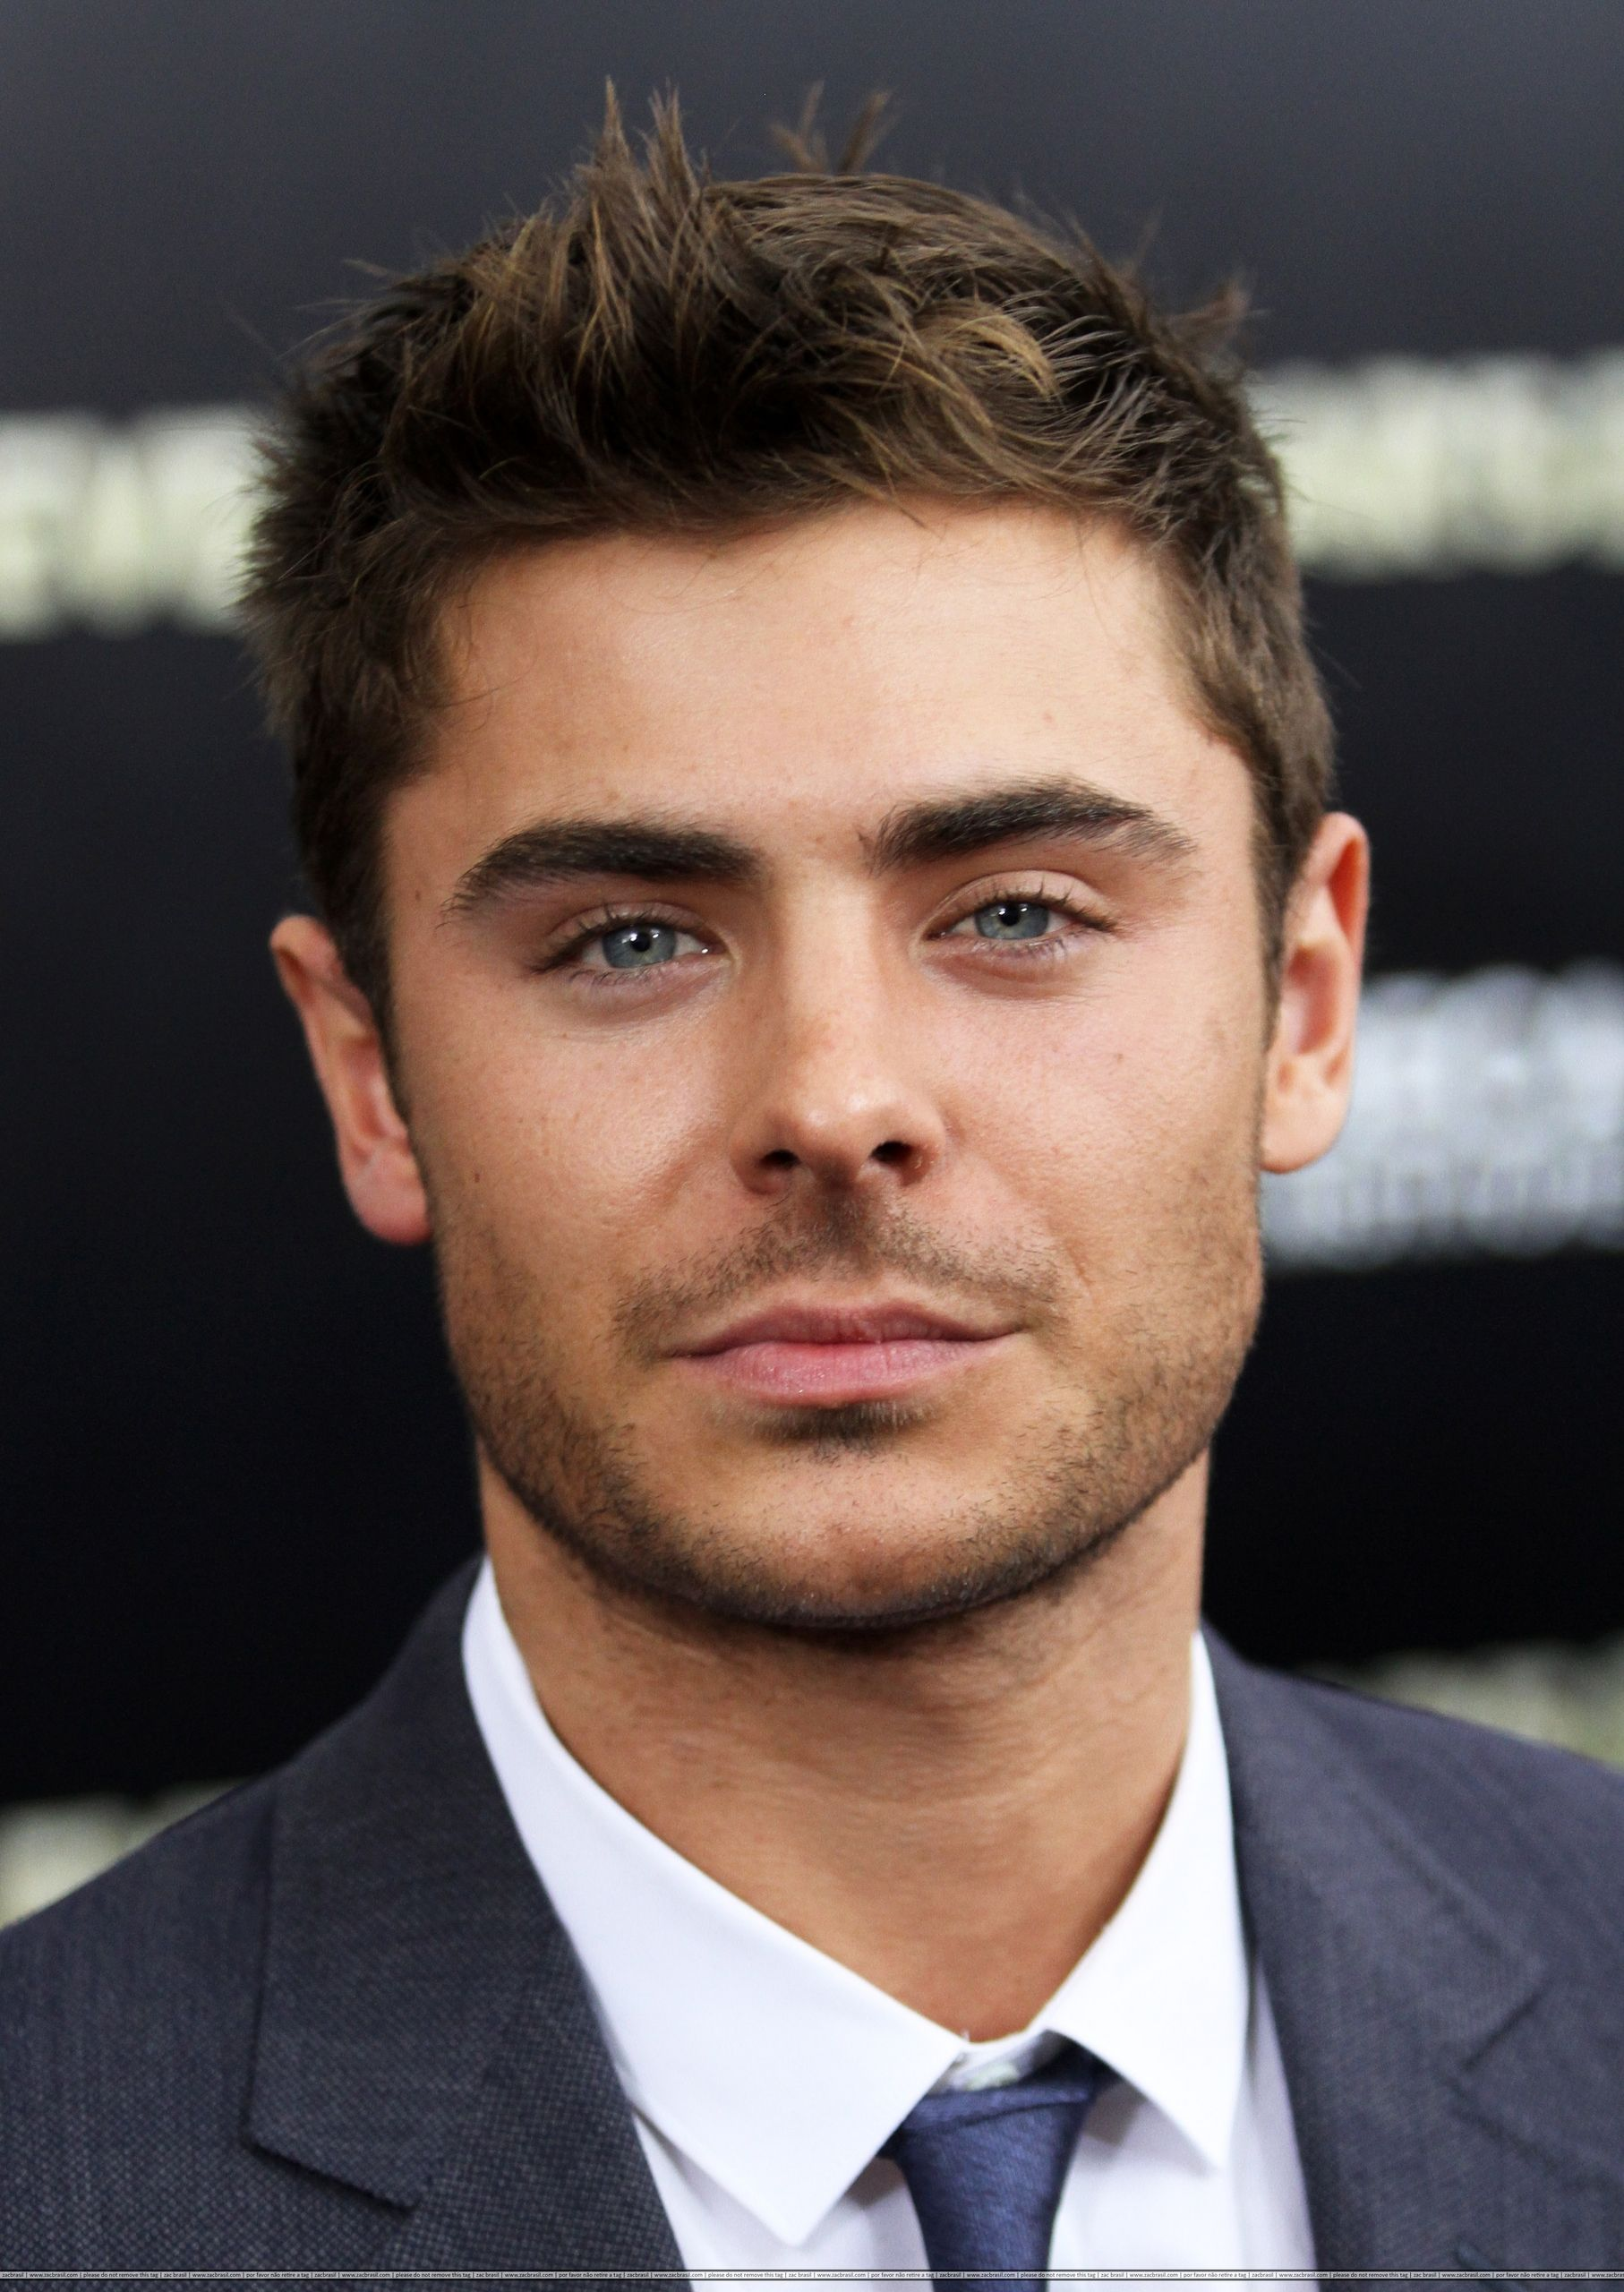 Zac Afron Google Search Gorgeous Men Pinterest Zac Efron